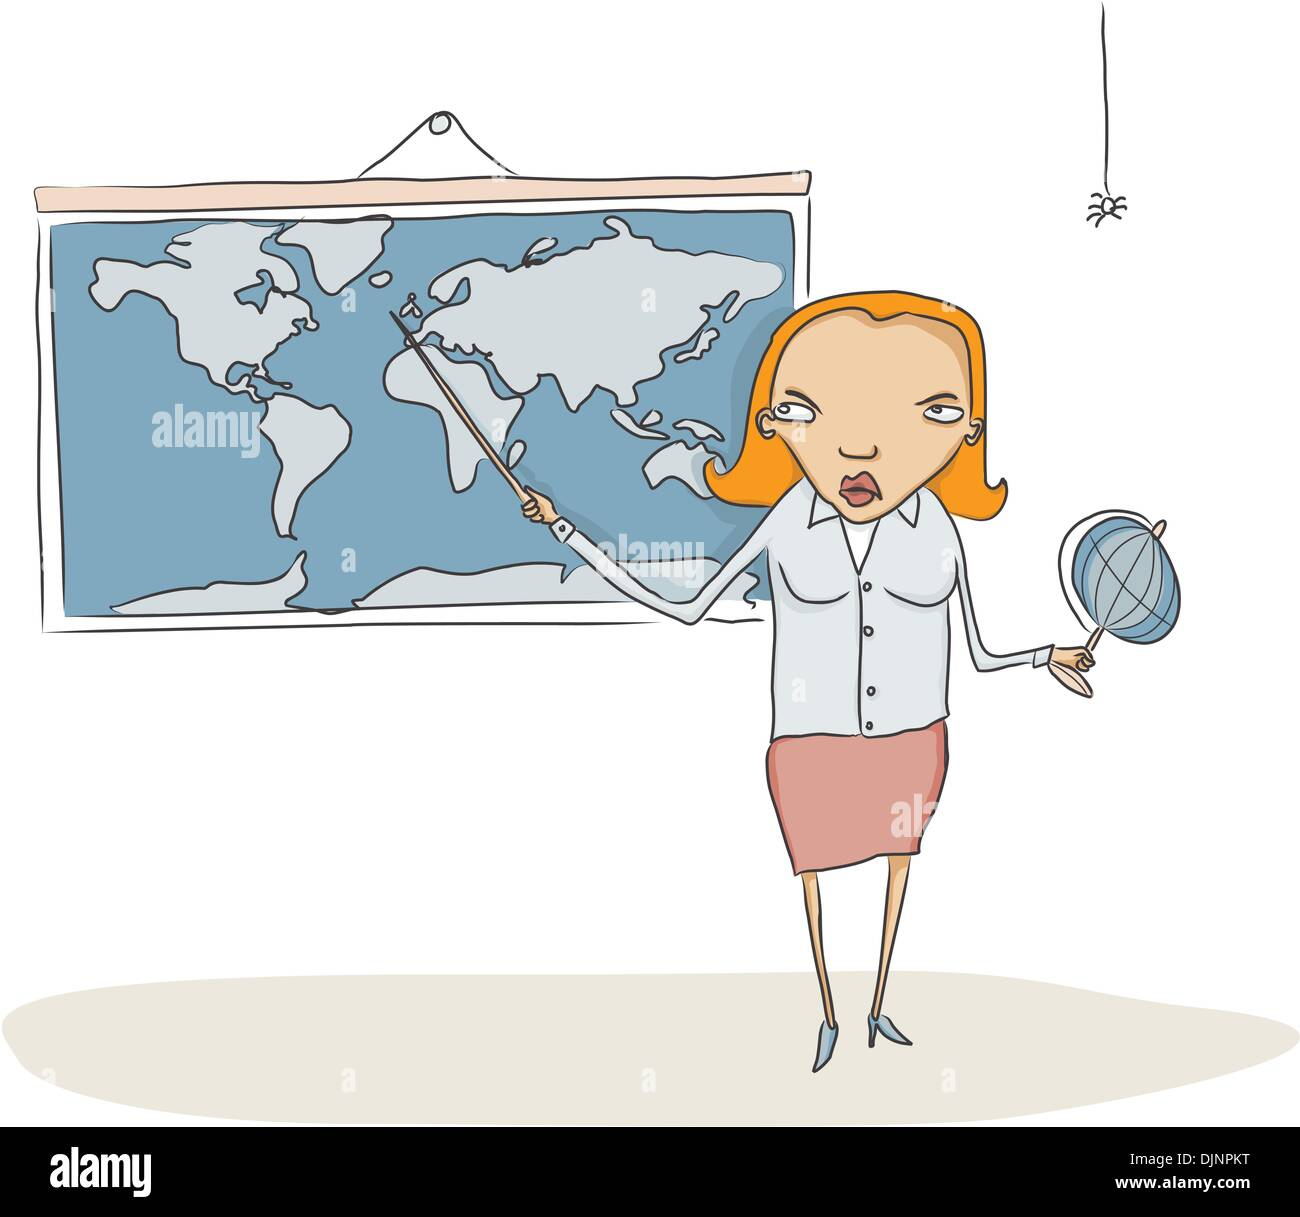 Mature Geography Teacher Holding A Globe Stock Image - Image of ...